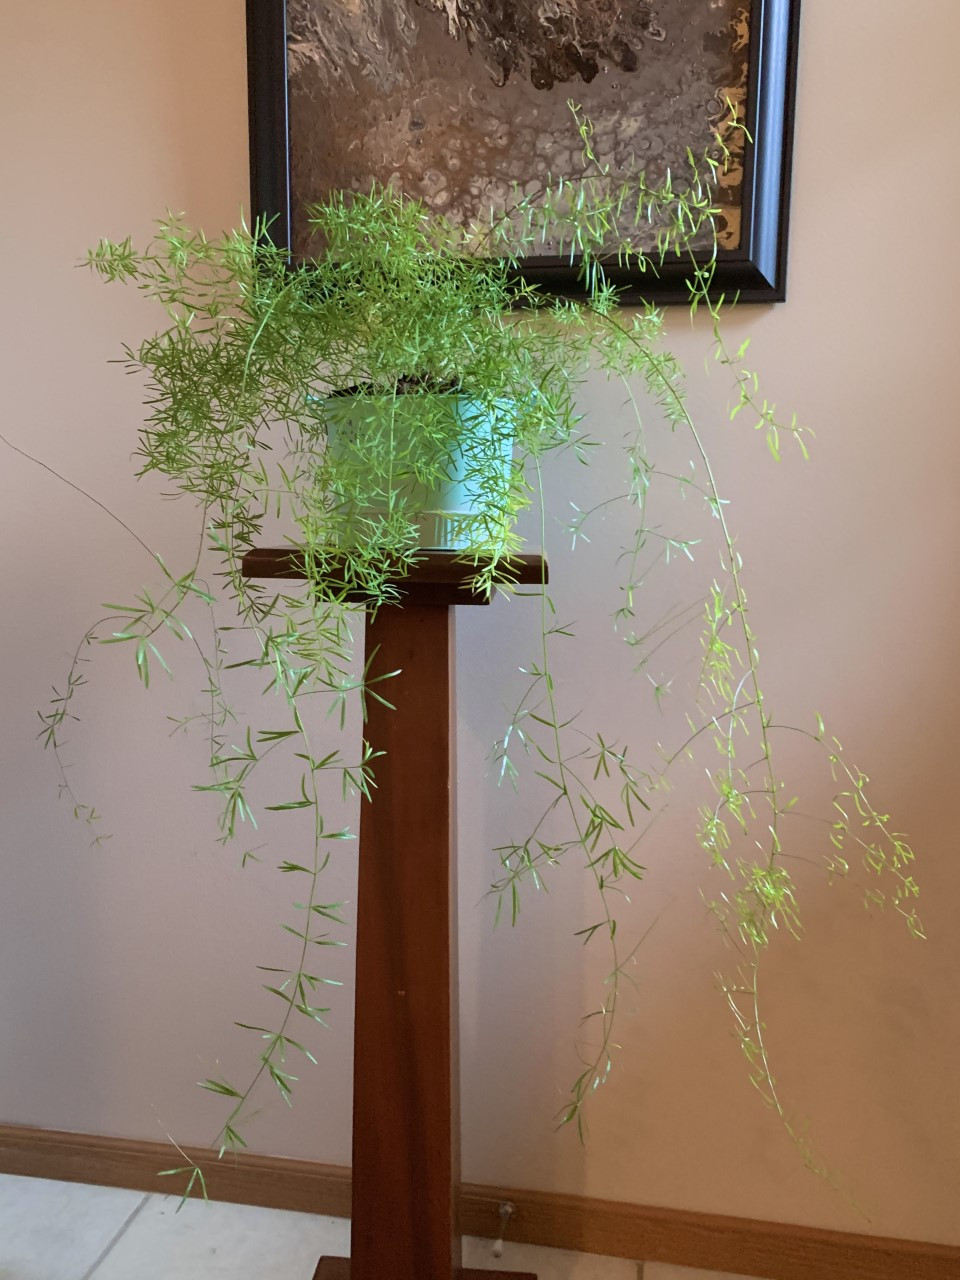 A light-green asparagus fern with fronds draping down from its pot.